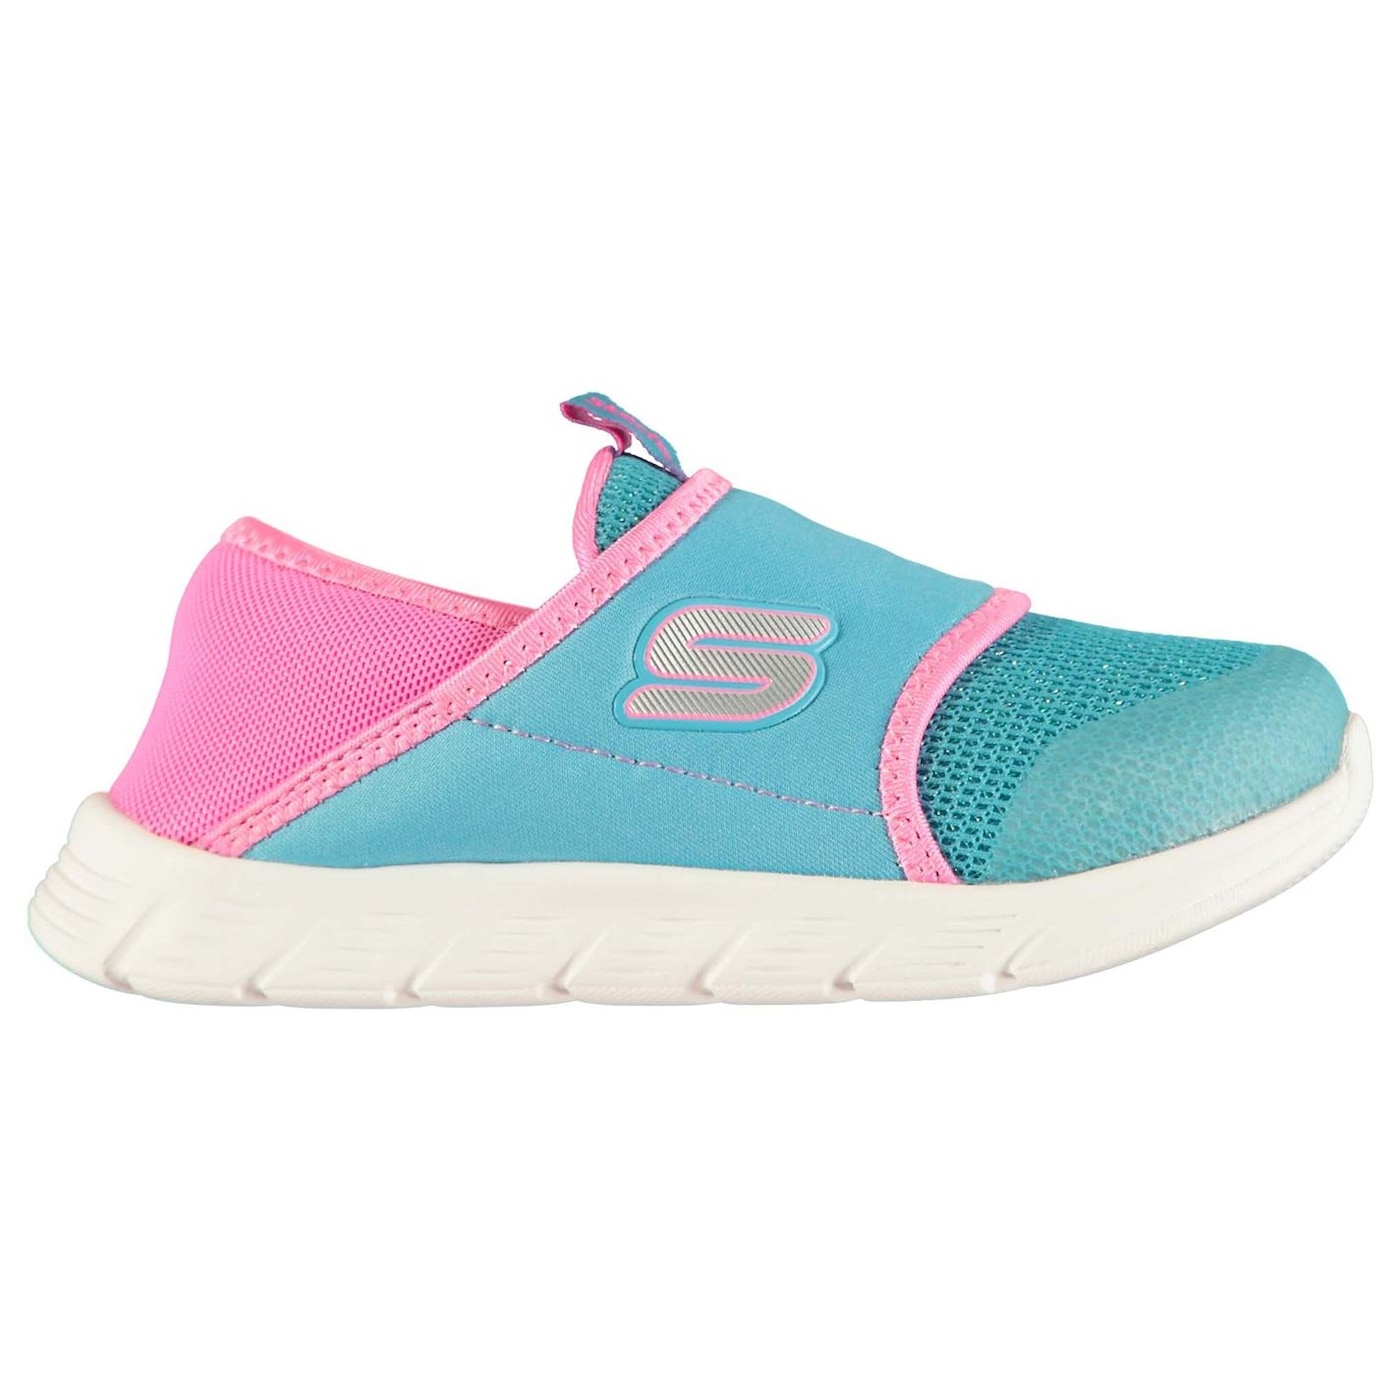 Skechers Comfy Flex Shoes Infant Girls